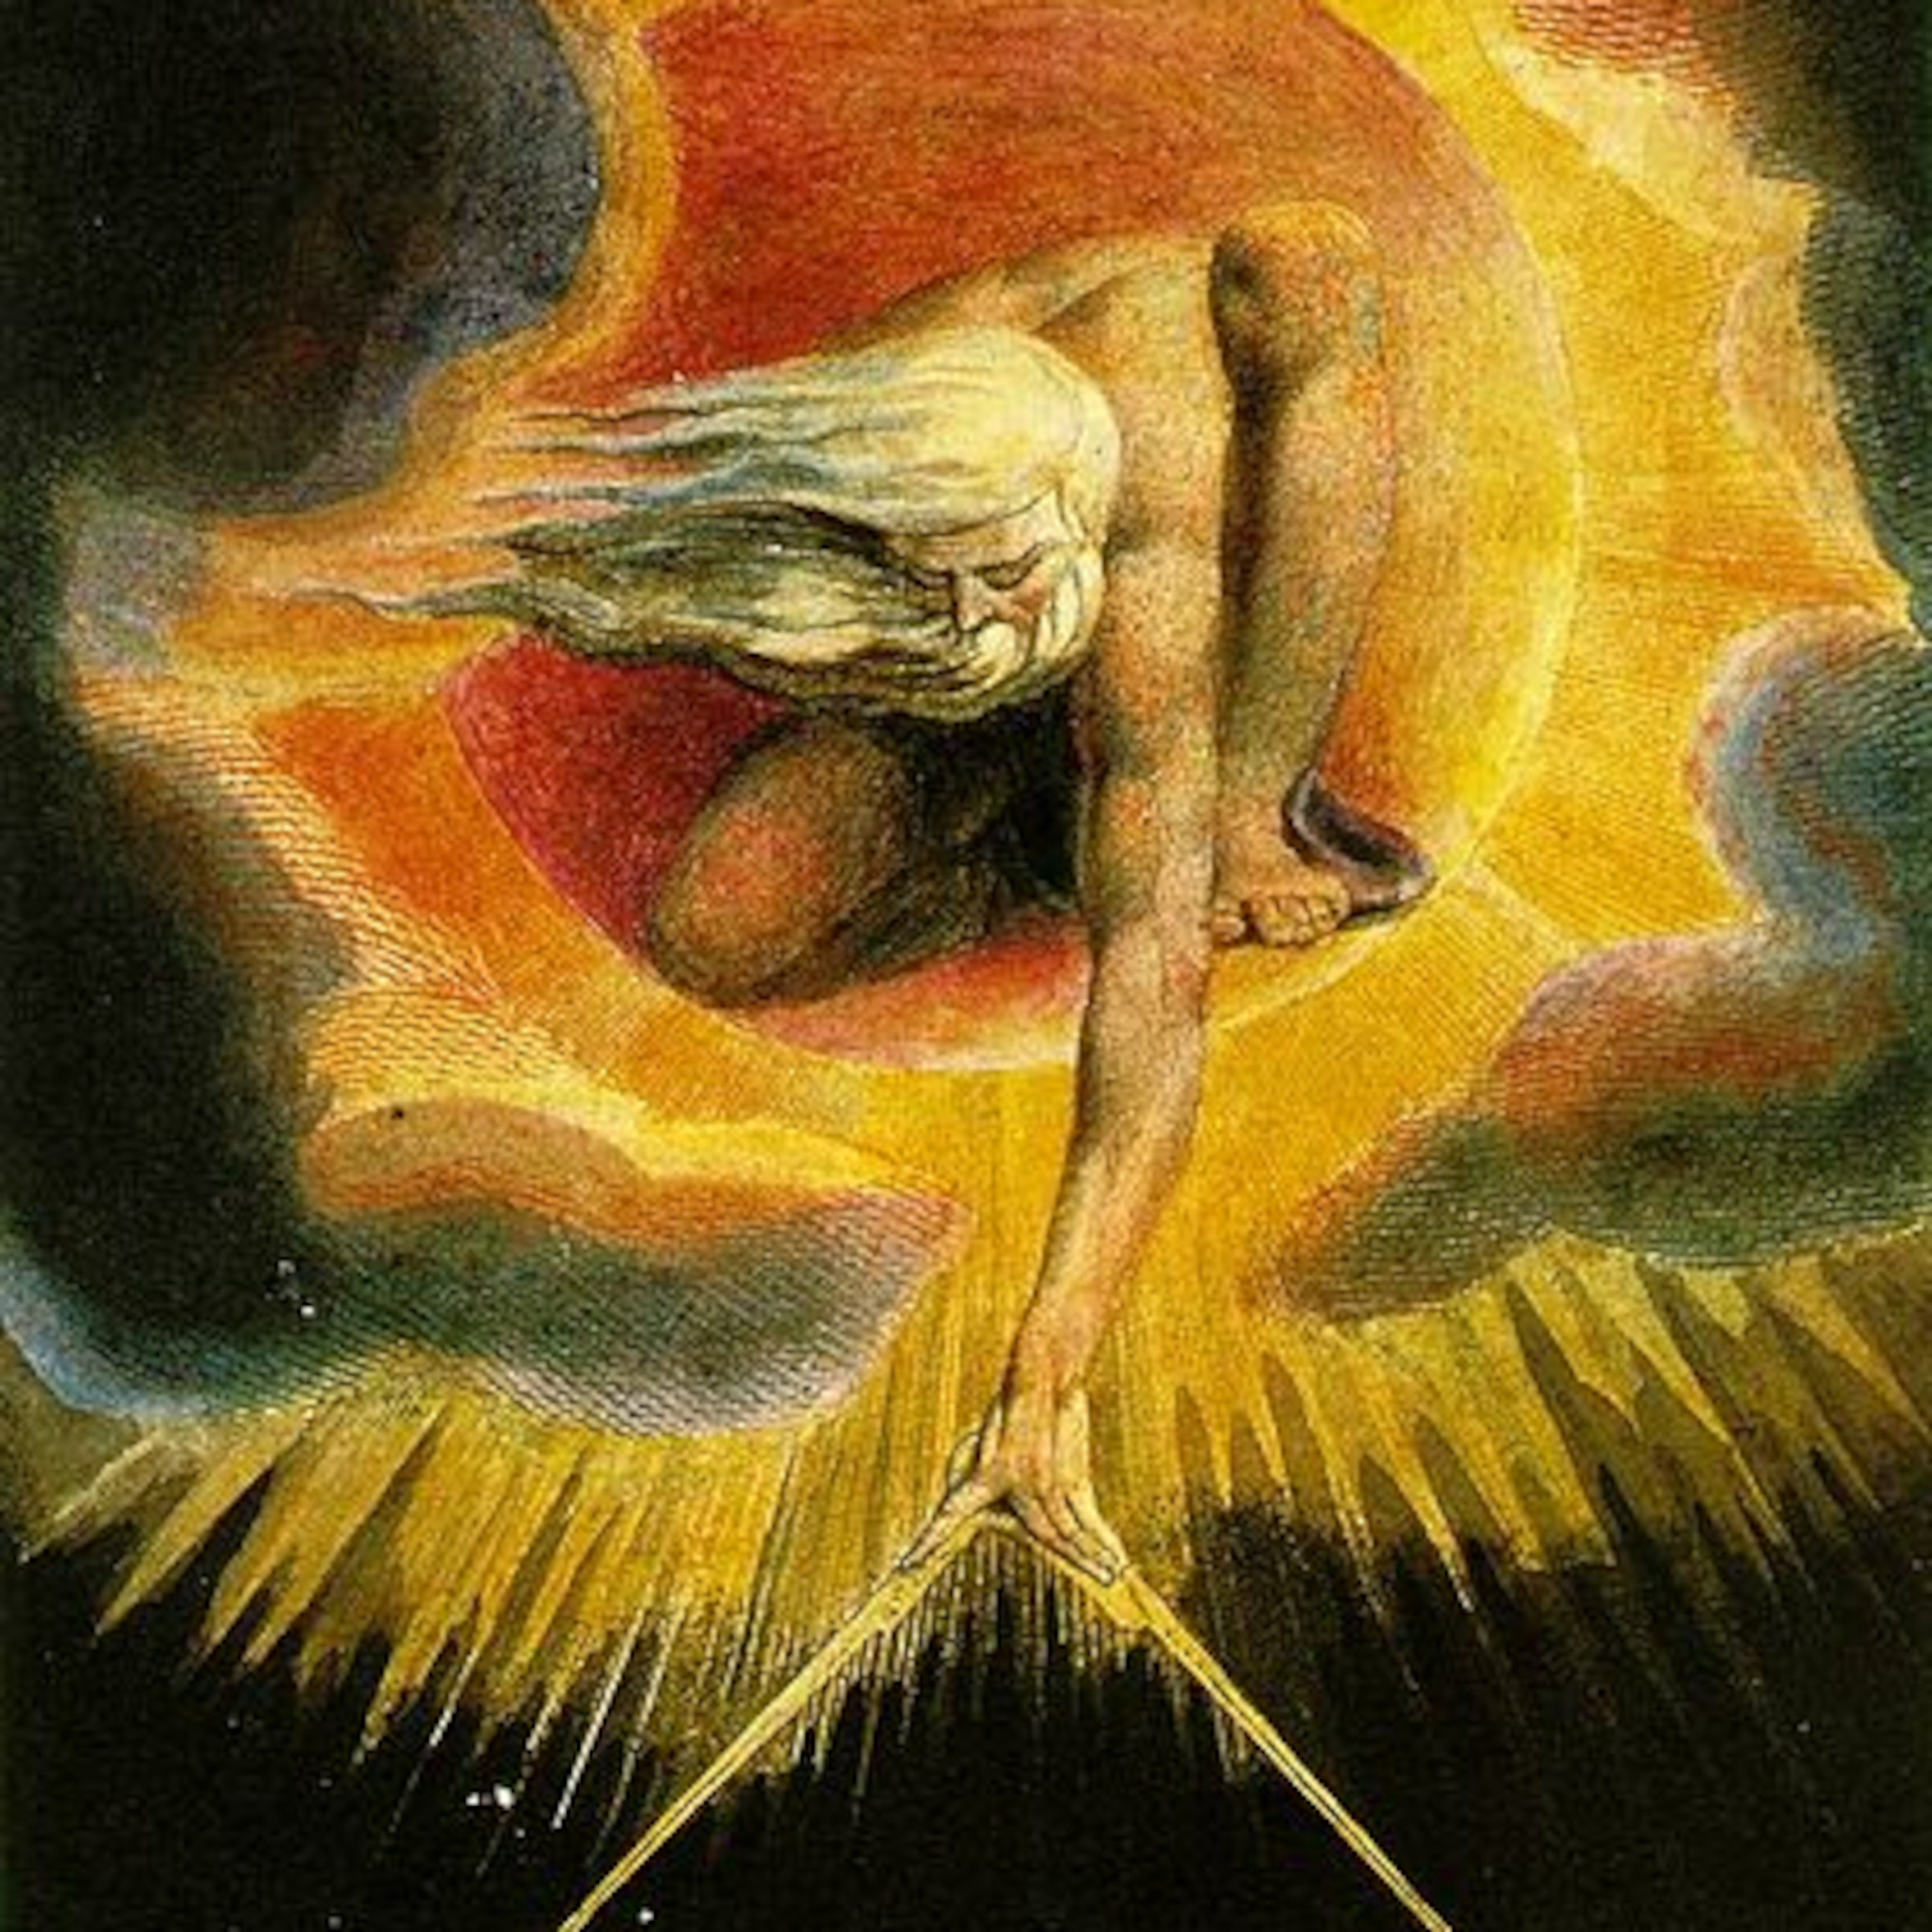 Blake, prophet and visionary part 4